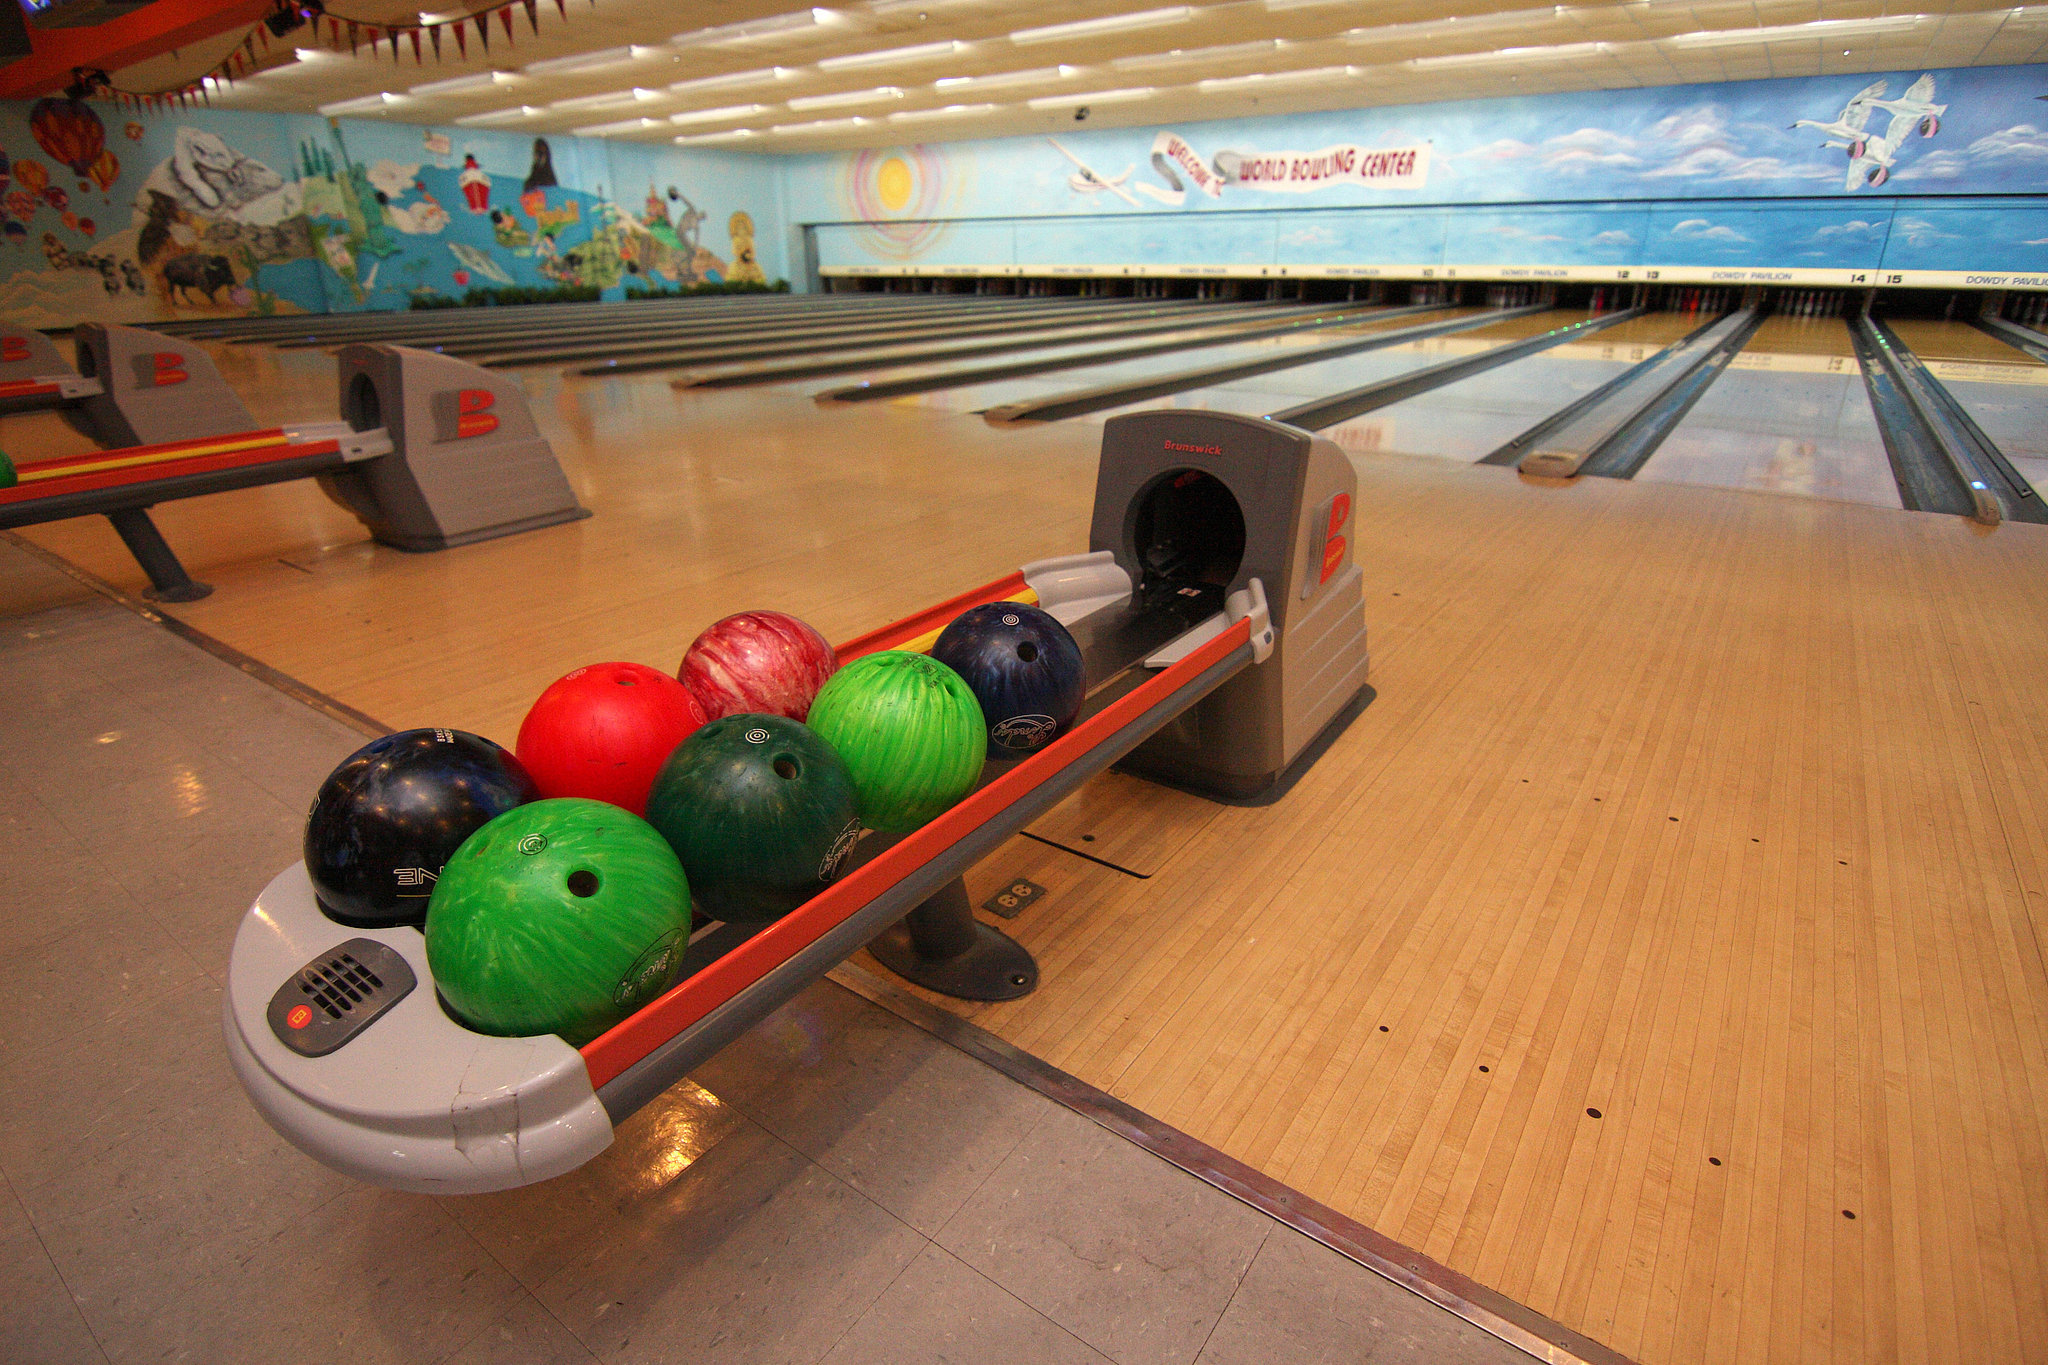 Get a Strike at the Bowling Alley